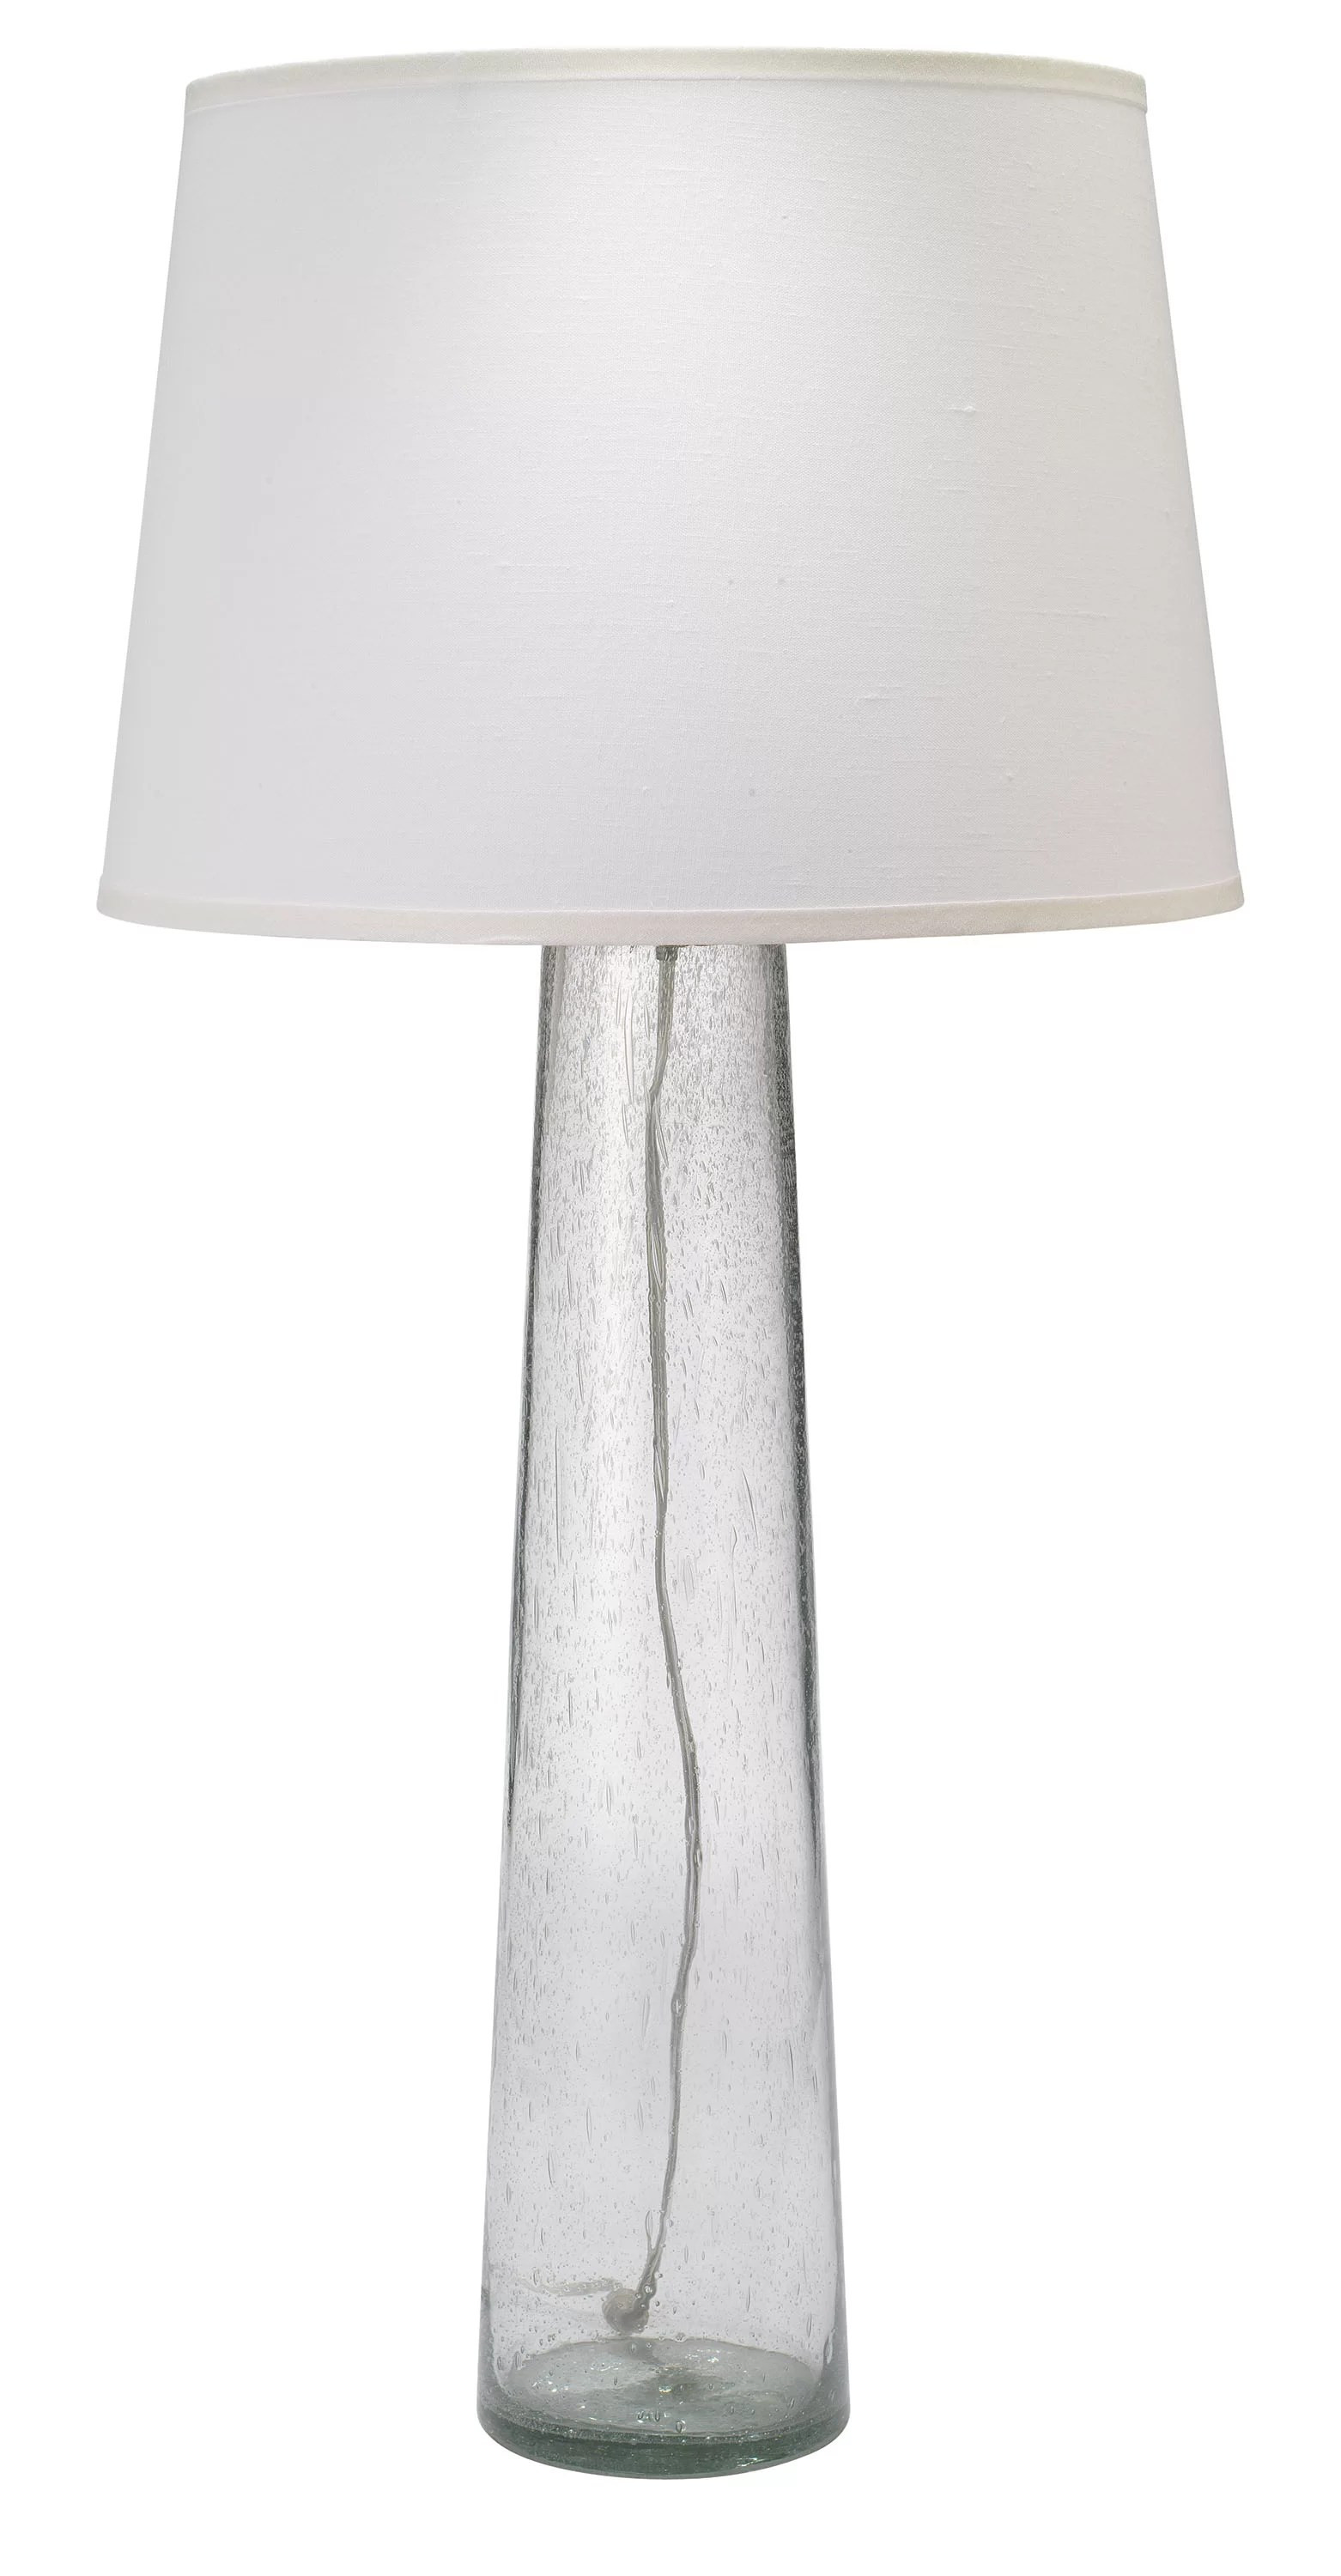 Jamie Young Company 38 Clear Glass Table Lamp